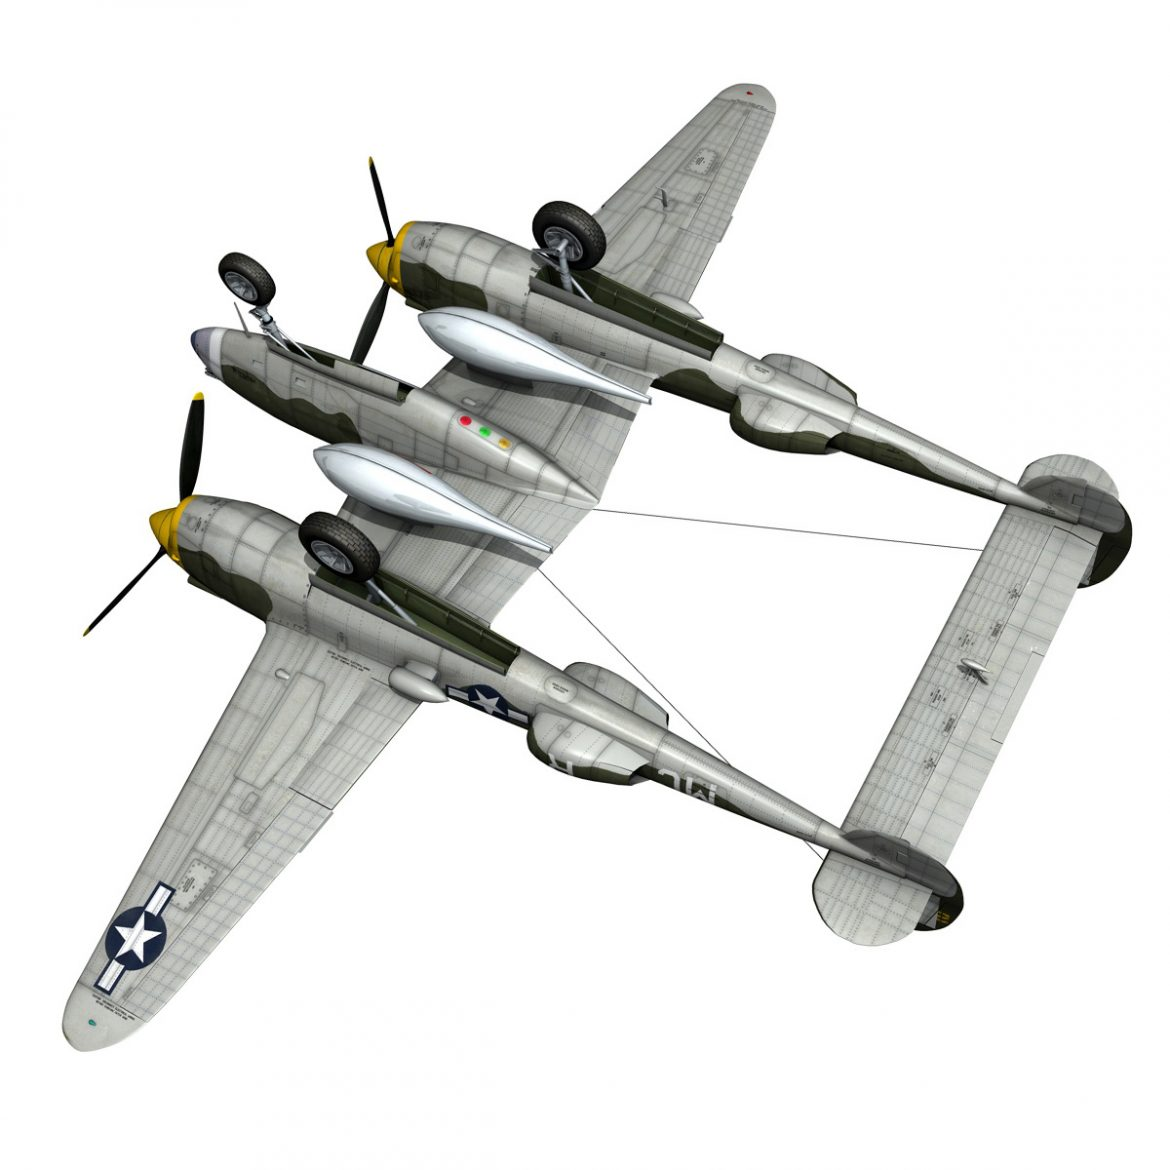 lockheed p-38 lightning – gentle annie 3d model fbx c4d lwo obj 300095